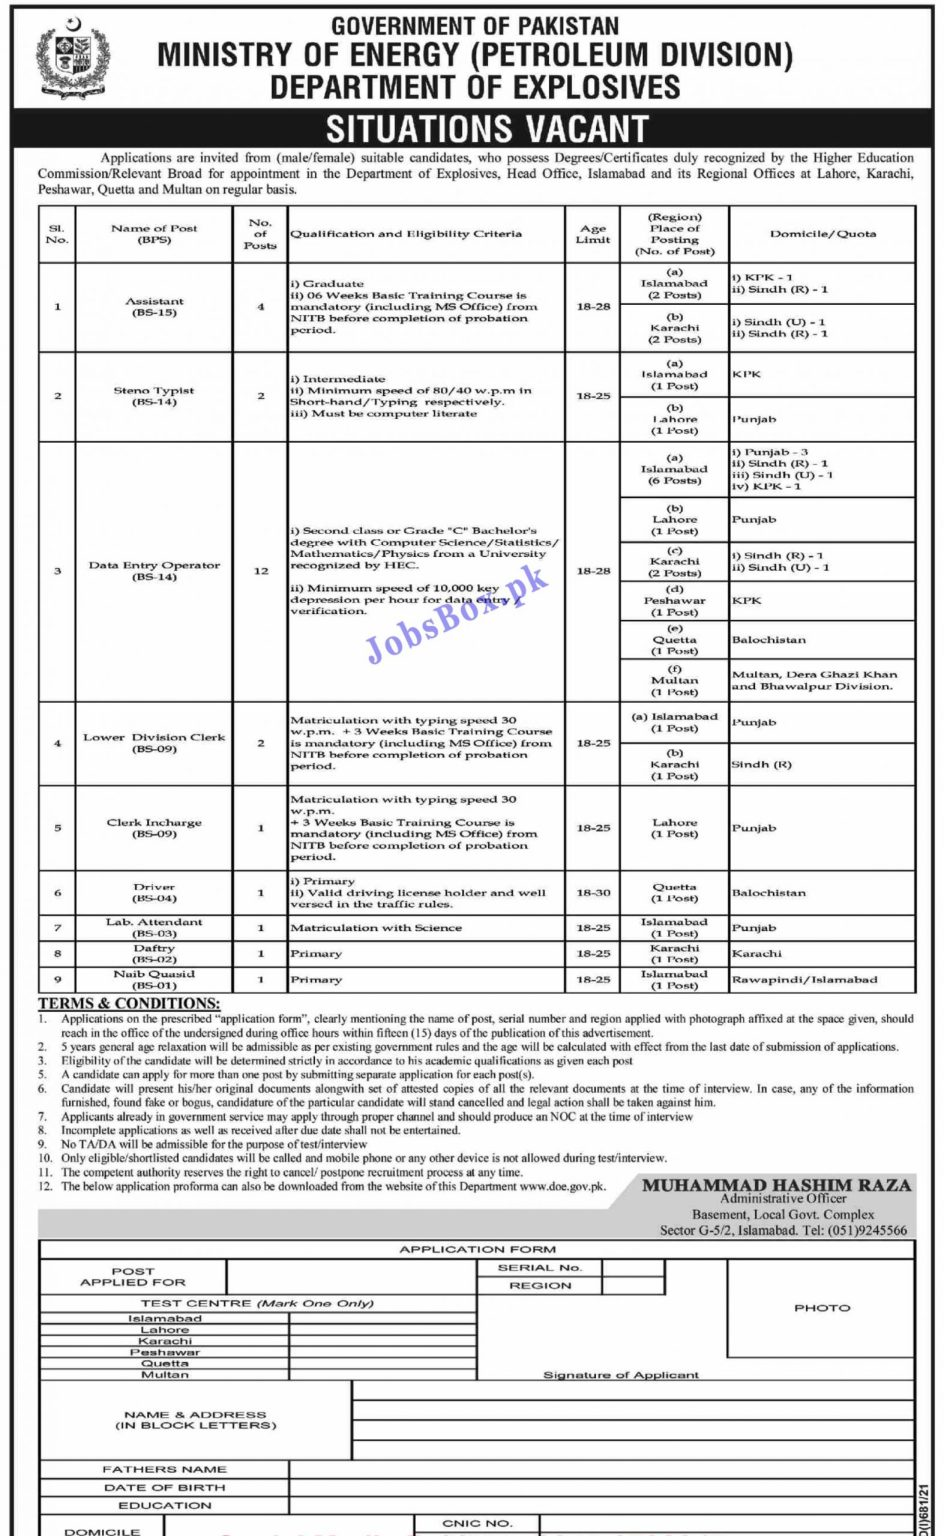 Ministry of Energy Government of Pakistan Jobs 2021 – Application Form